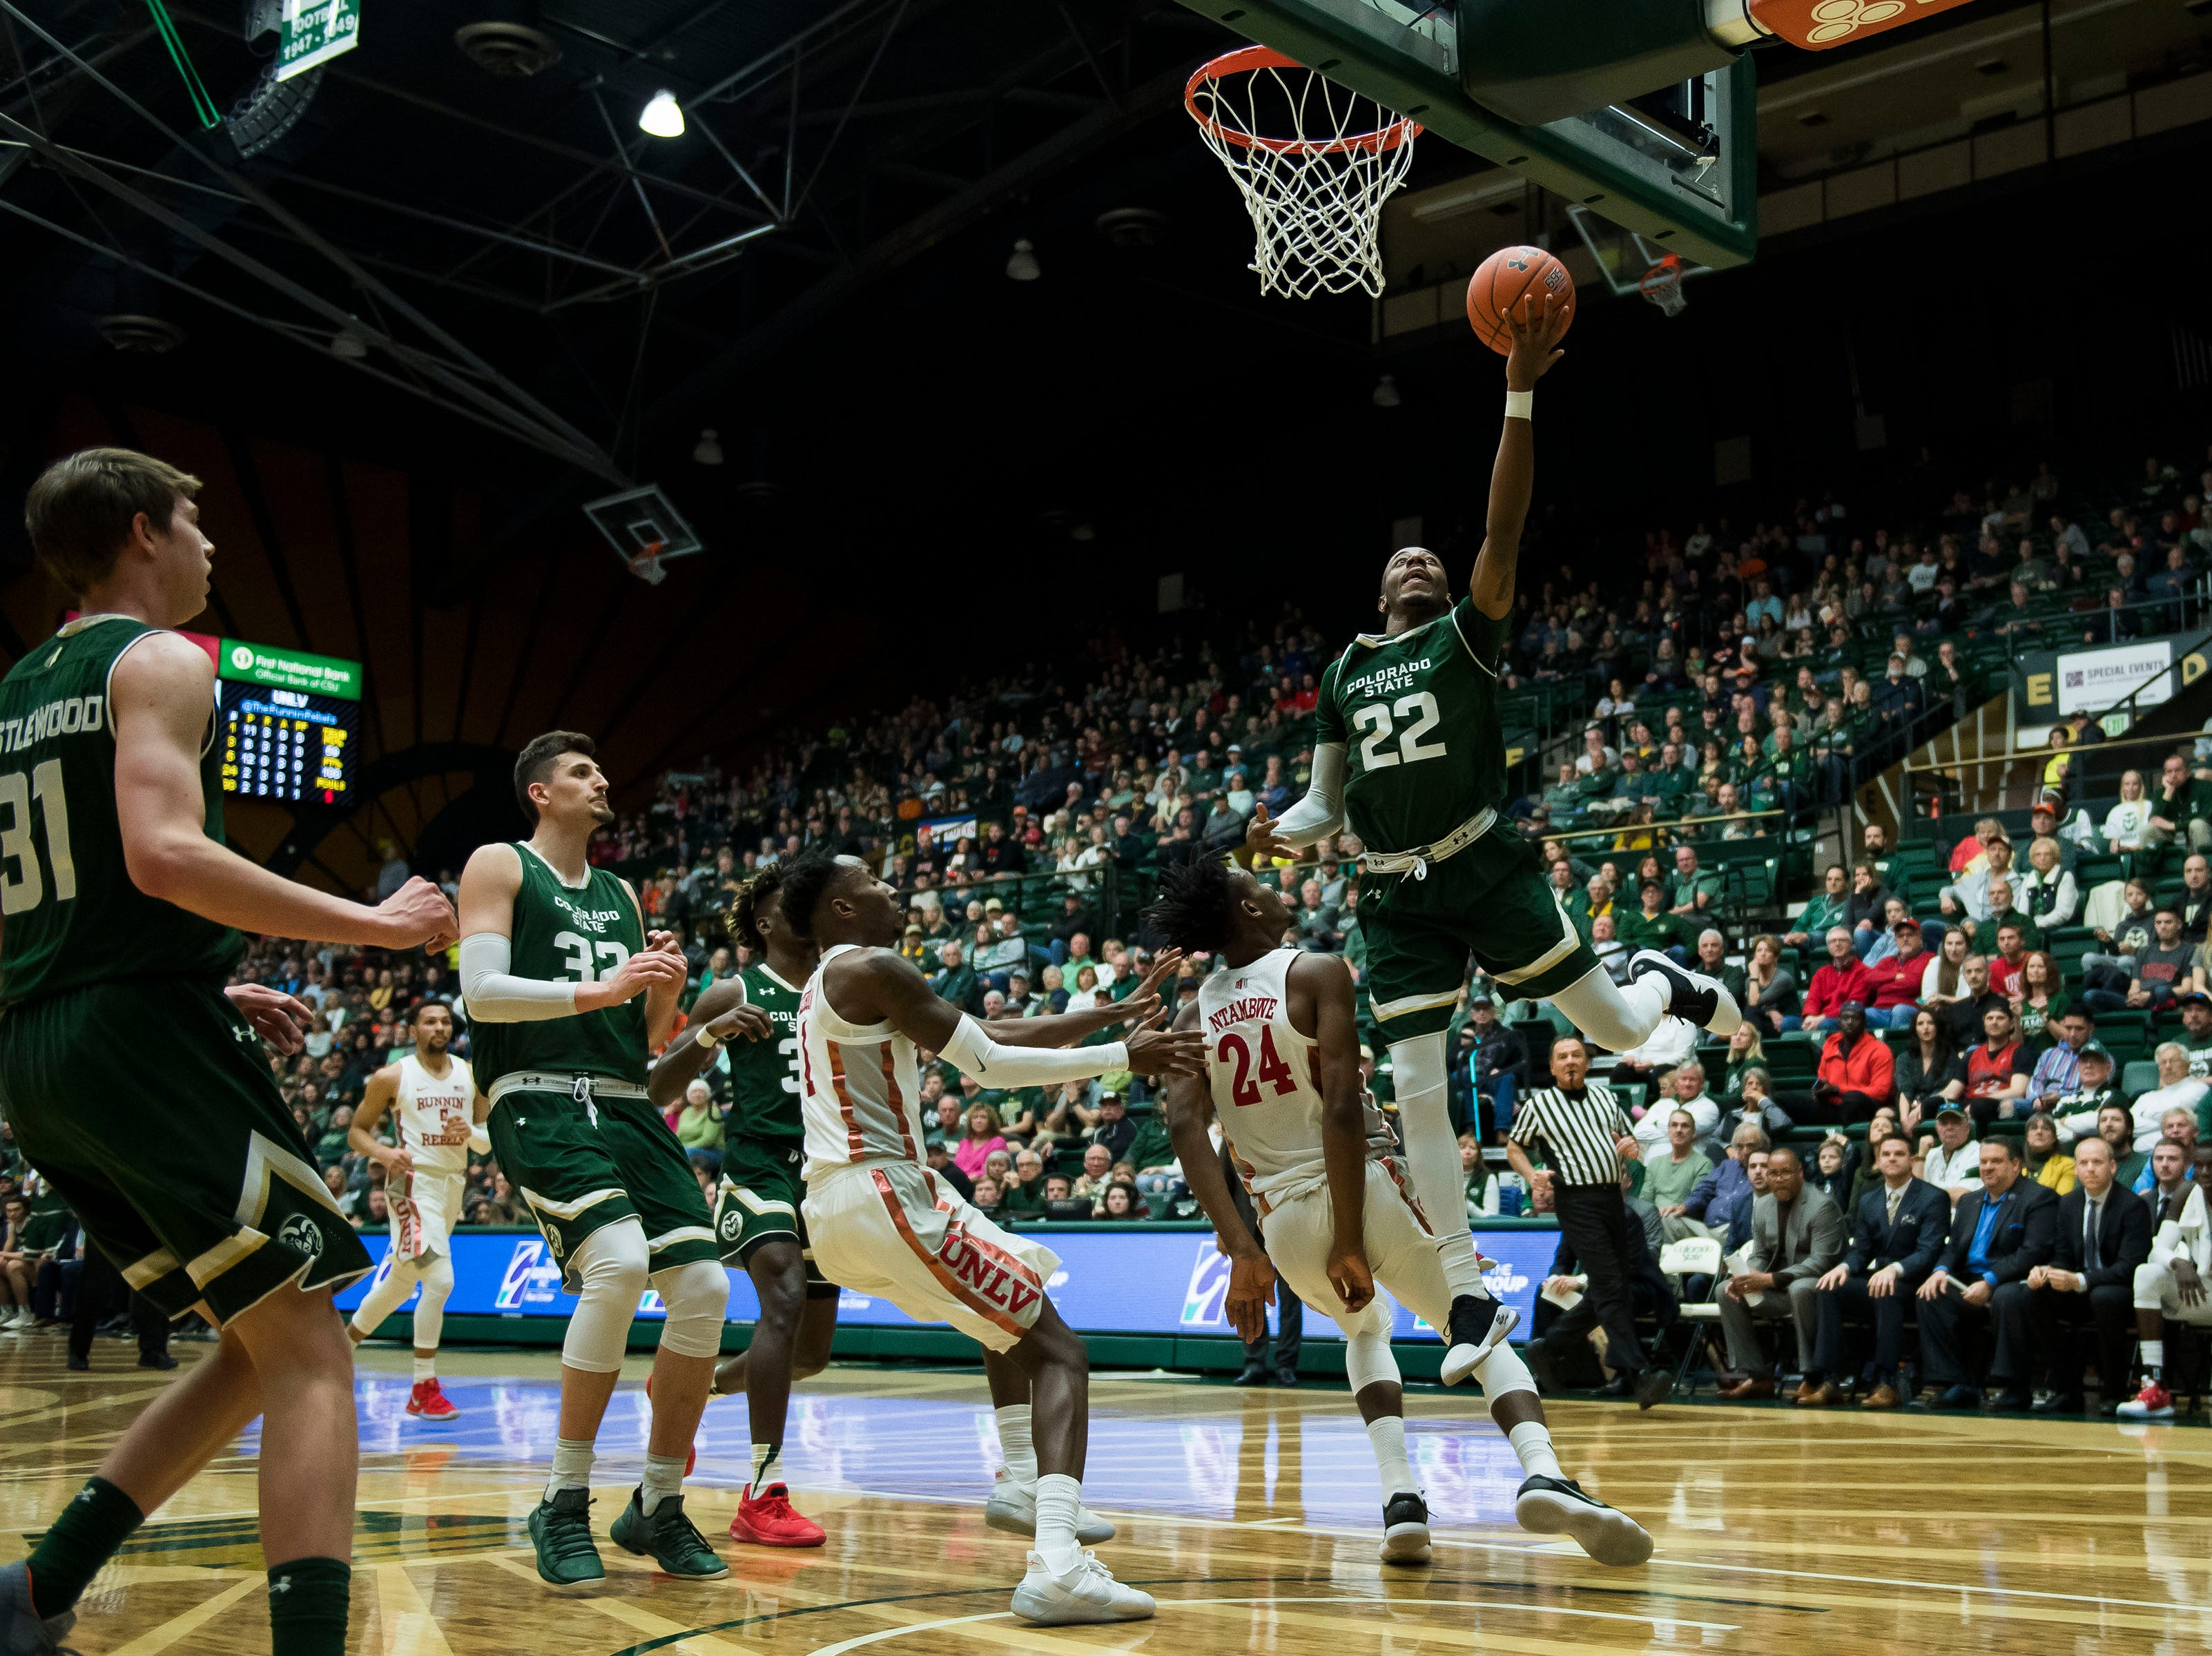 Colorado State University senior guard J.D. Paige (22) gets the layup and one during a game against University of Nevada, Las Vegas on Saturday, March 9, 2019, at Moby Arena in Fort Collins, Colo.